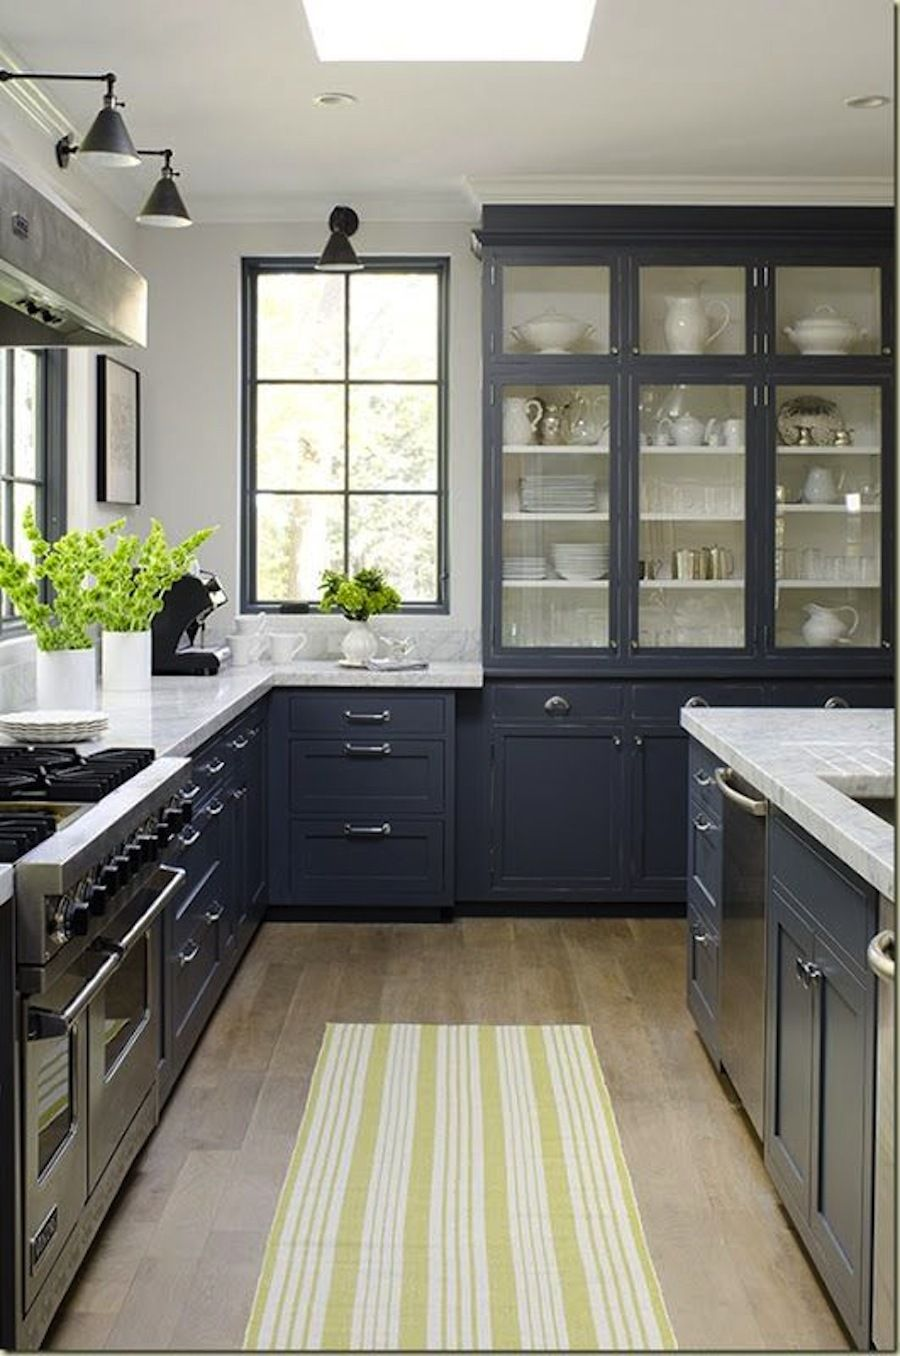 15 Stunning Gray Kitchen [ Vacupack.com ] #kitchen #quality #fresh